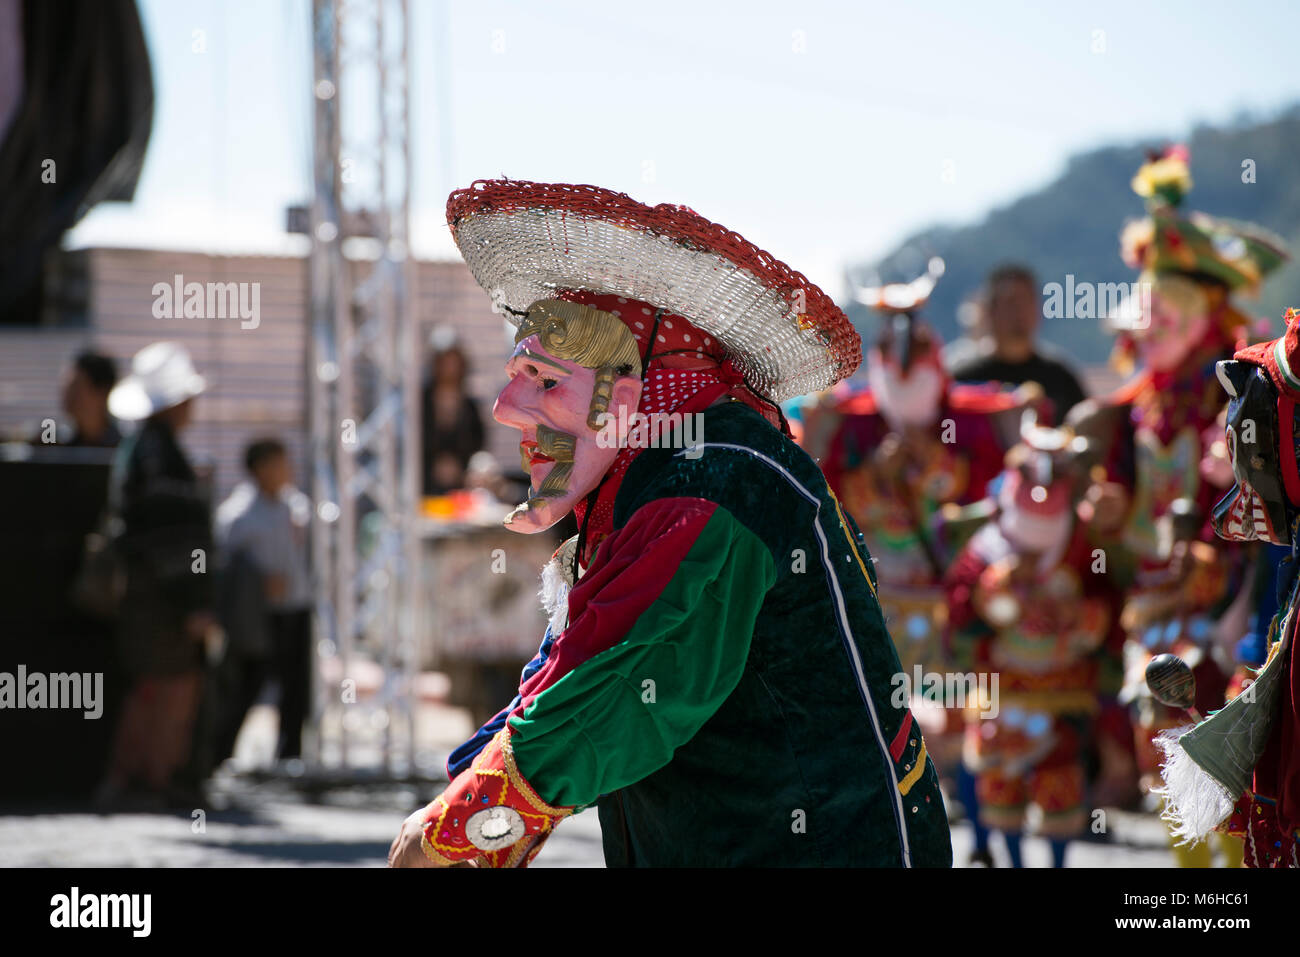 A Mayan man dressed as a conquistador at an ancient Mayan ritual at the 2013 Rukux festival in Sololá, Guatemala. - Stock Image